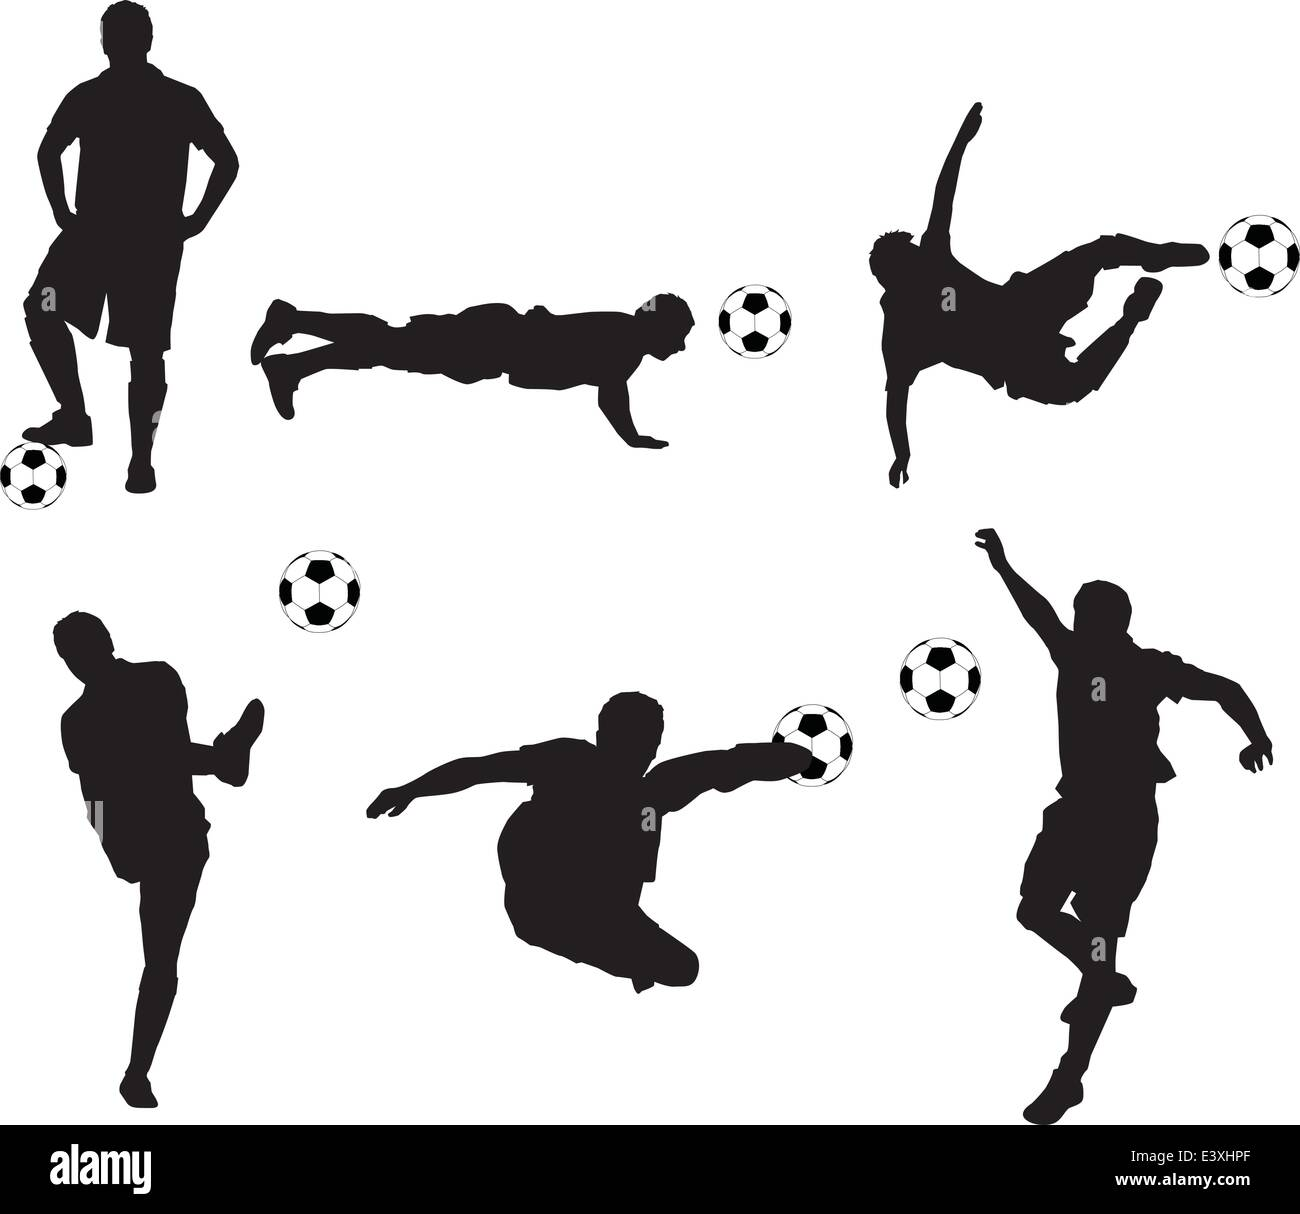 set of detailed illustration silhouettes of soccer players - Stock Vector